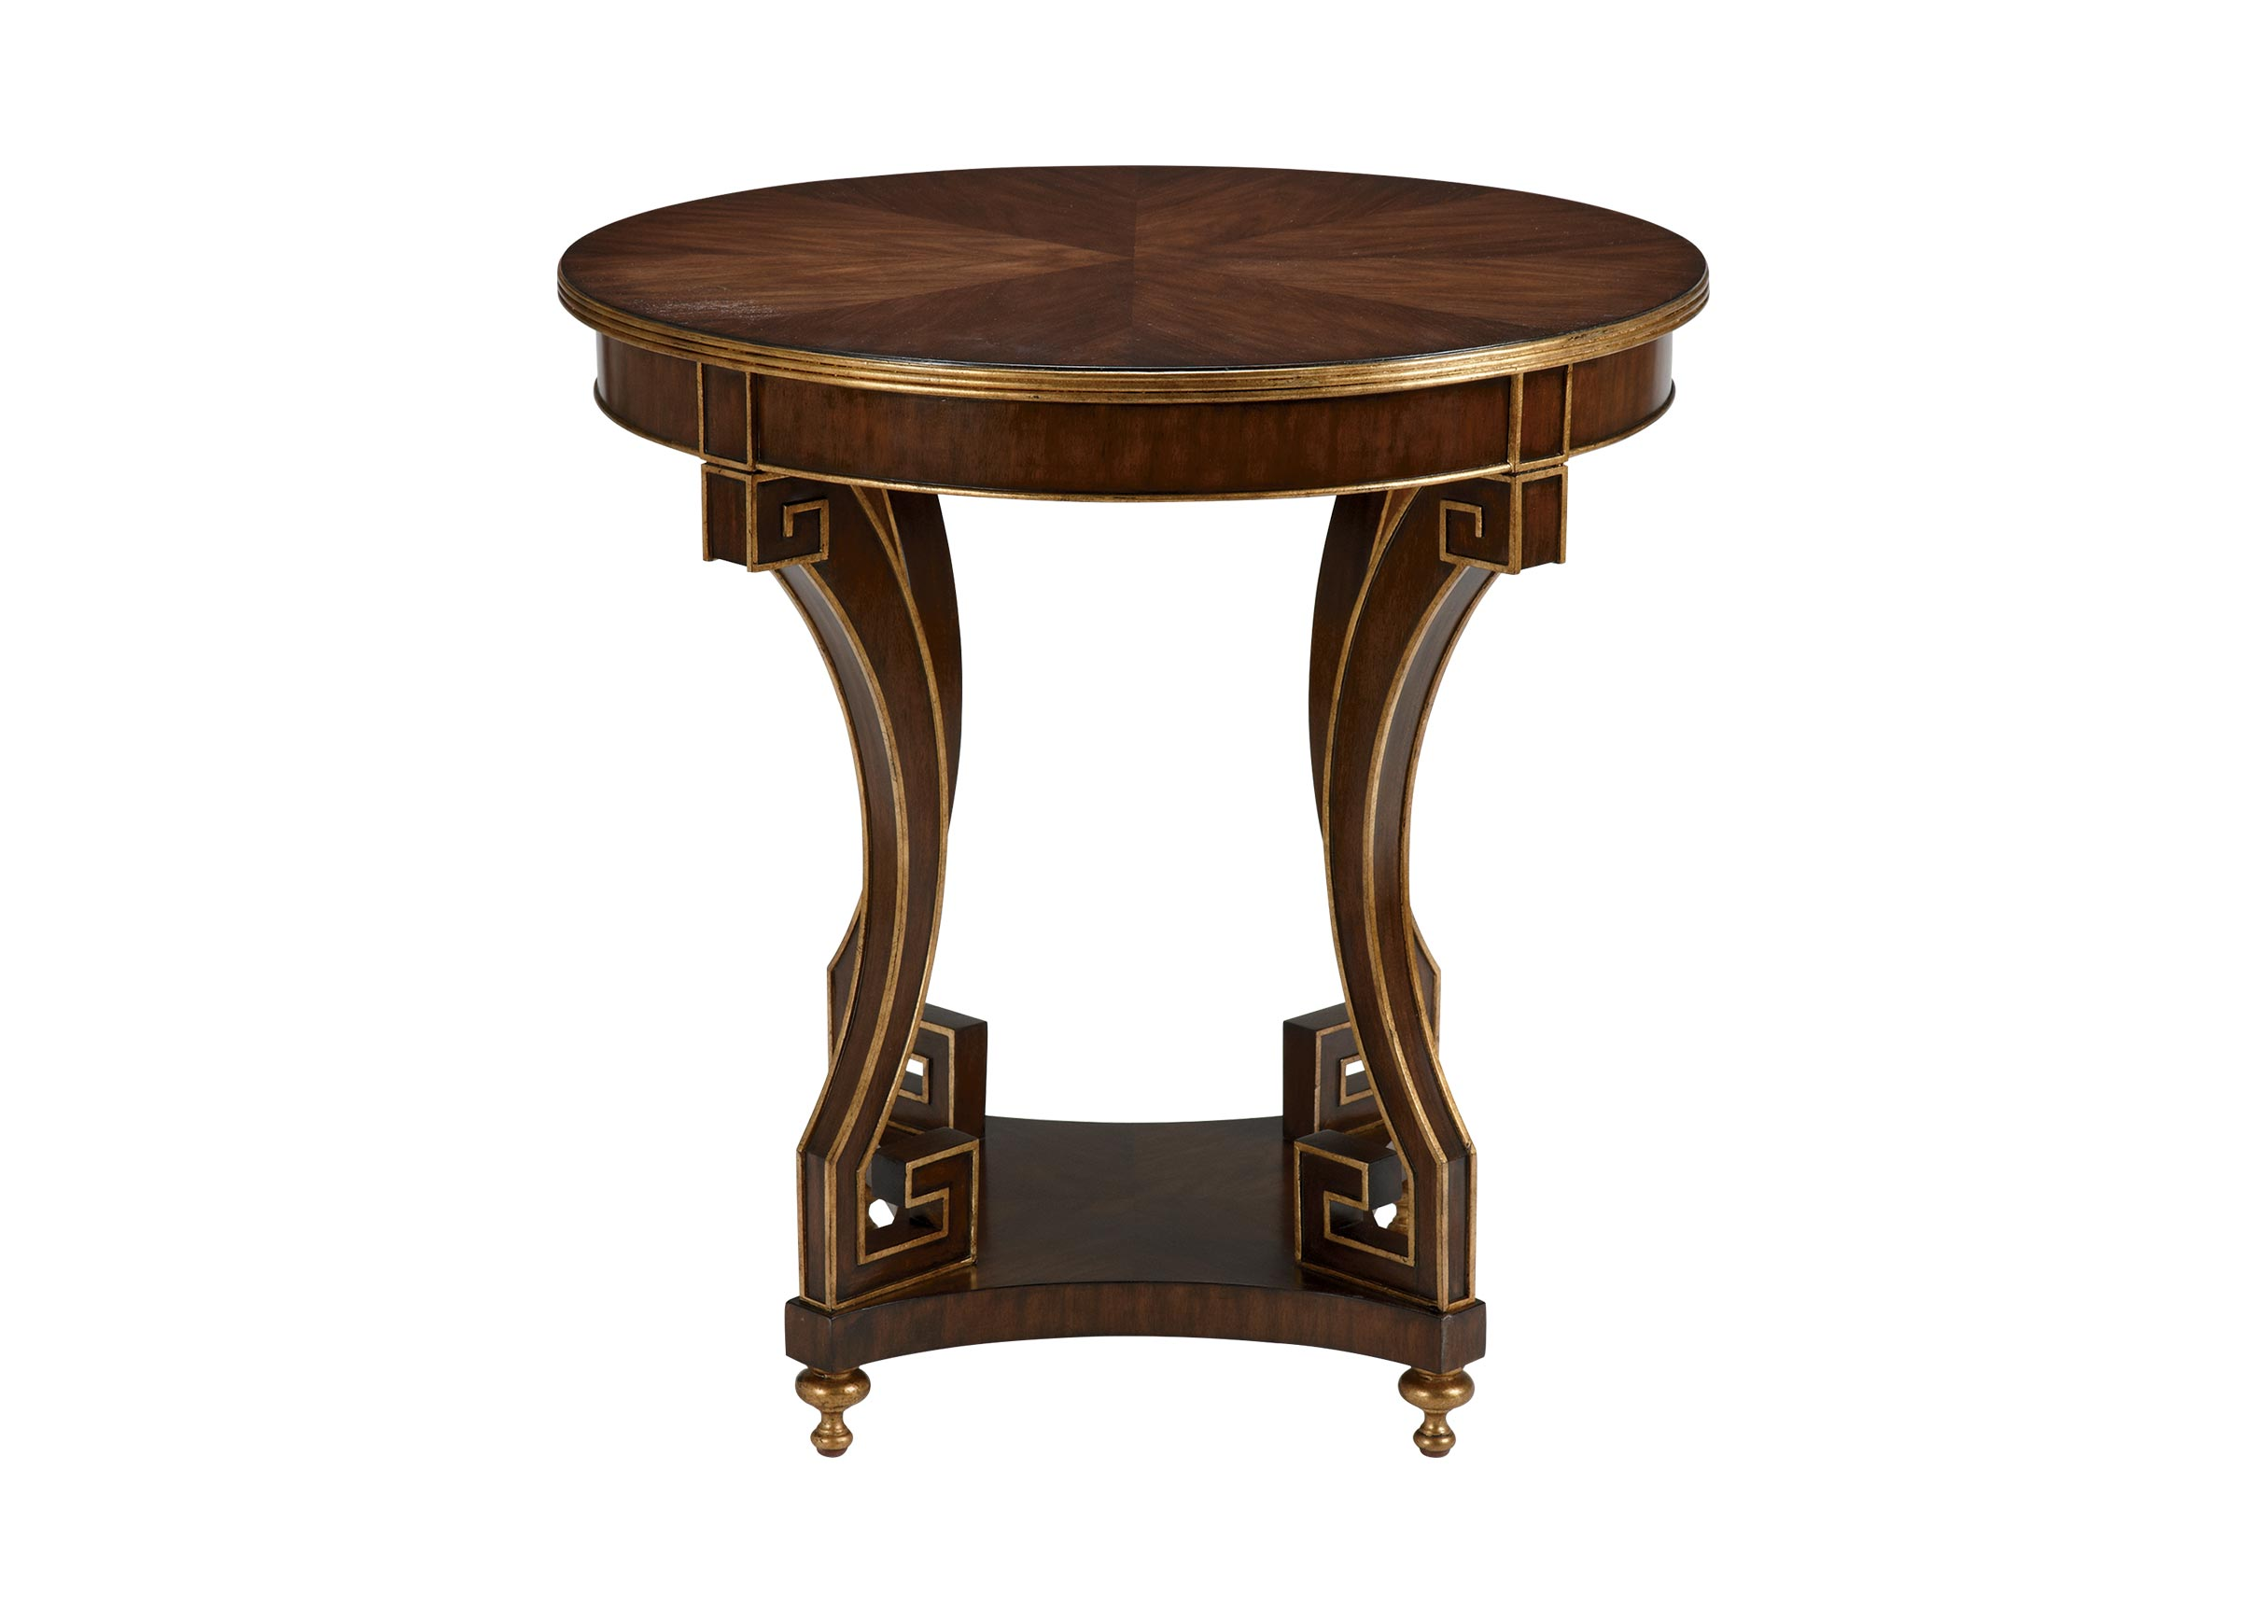 ethan allen pedestal end table tops front ballan accent lockwood side tables small occasional round metal patio long living room tall chest outside umbrellas blue oriental lamps